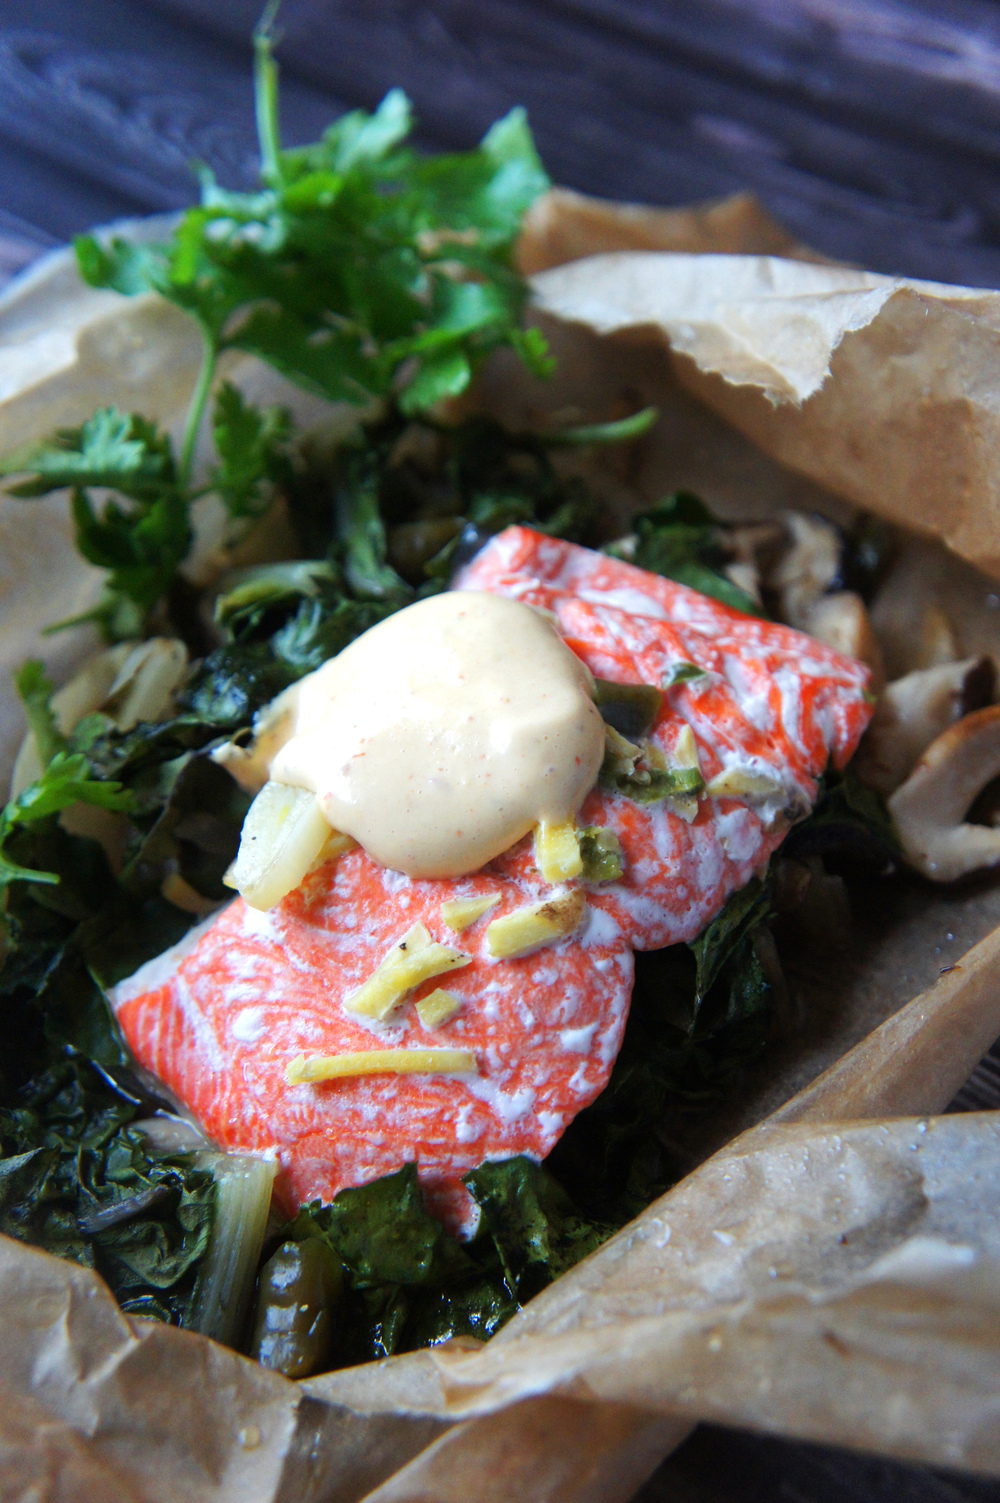 Salmon with Shiitake Mushrooms and Swiss Chard in Parchment, served with Sriracha Mayo